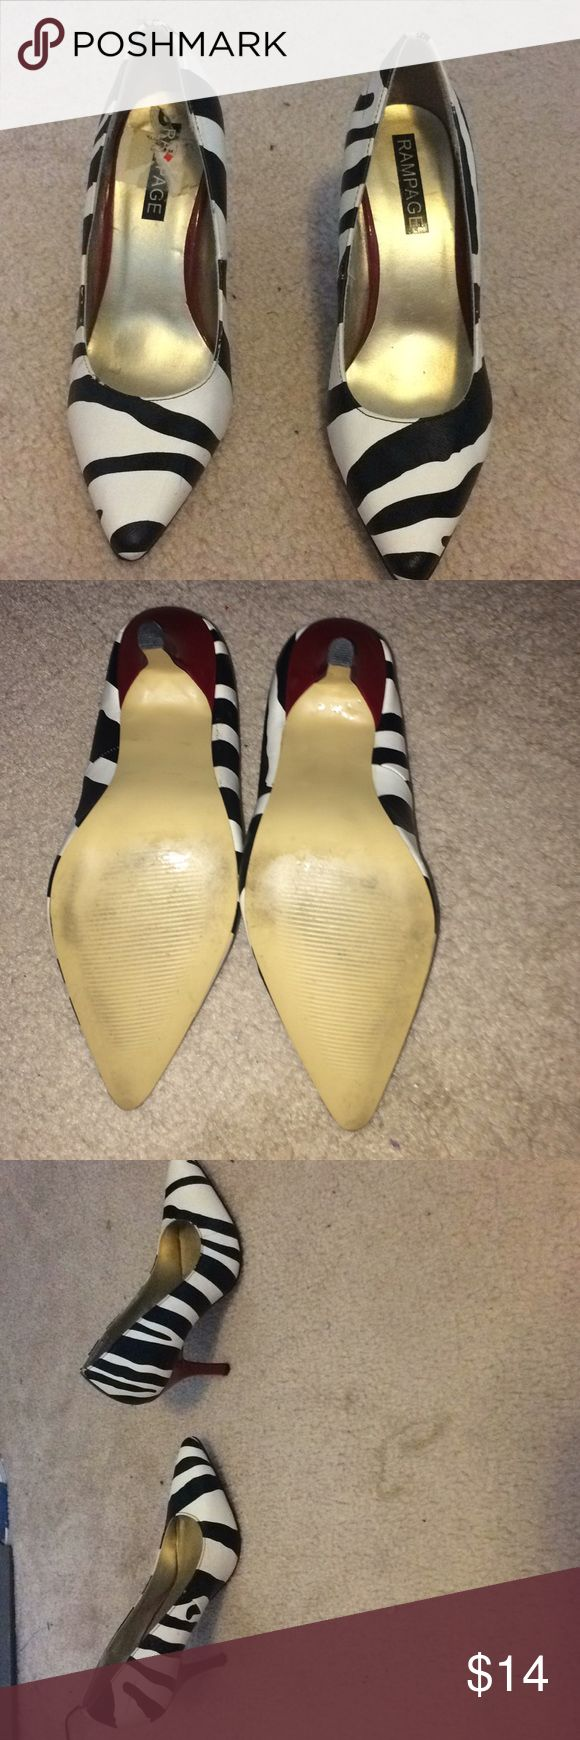 Red heeled zebra heels They are in Good condition other than the marks! Feel free to offer! Lmk if you have any questions! Rampage Shoes Heels